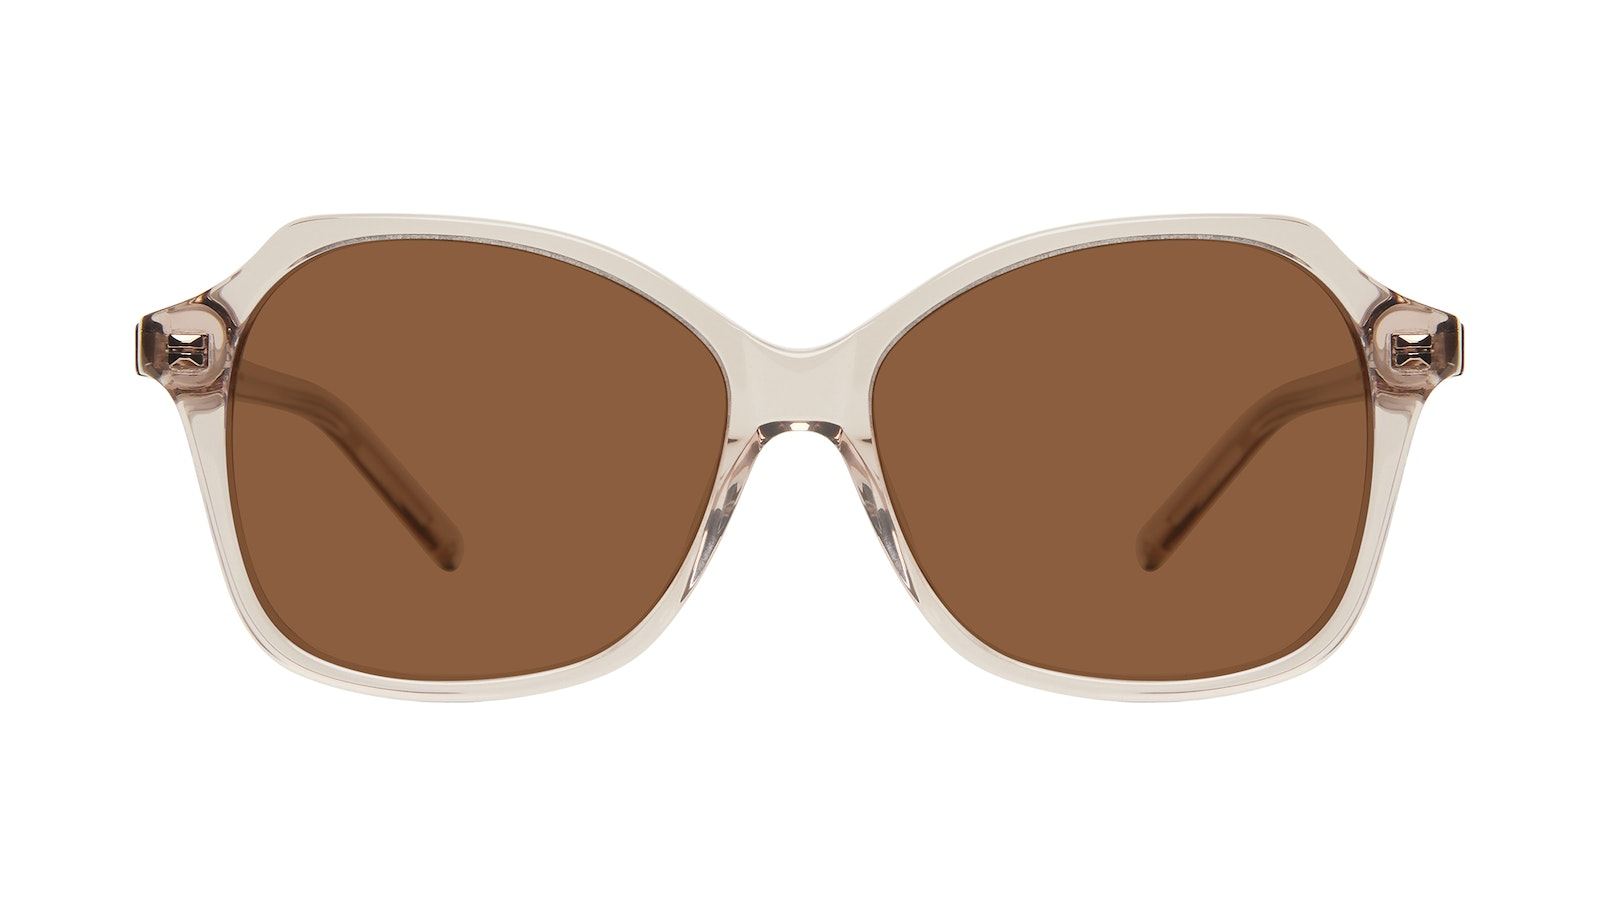 Affordable Fashion Glasses Square Sunglasses Women Outlook Sand